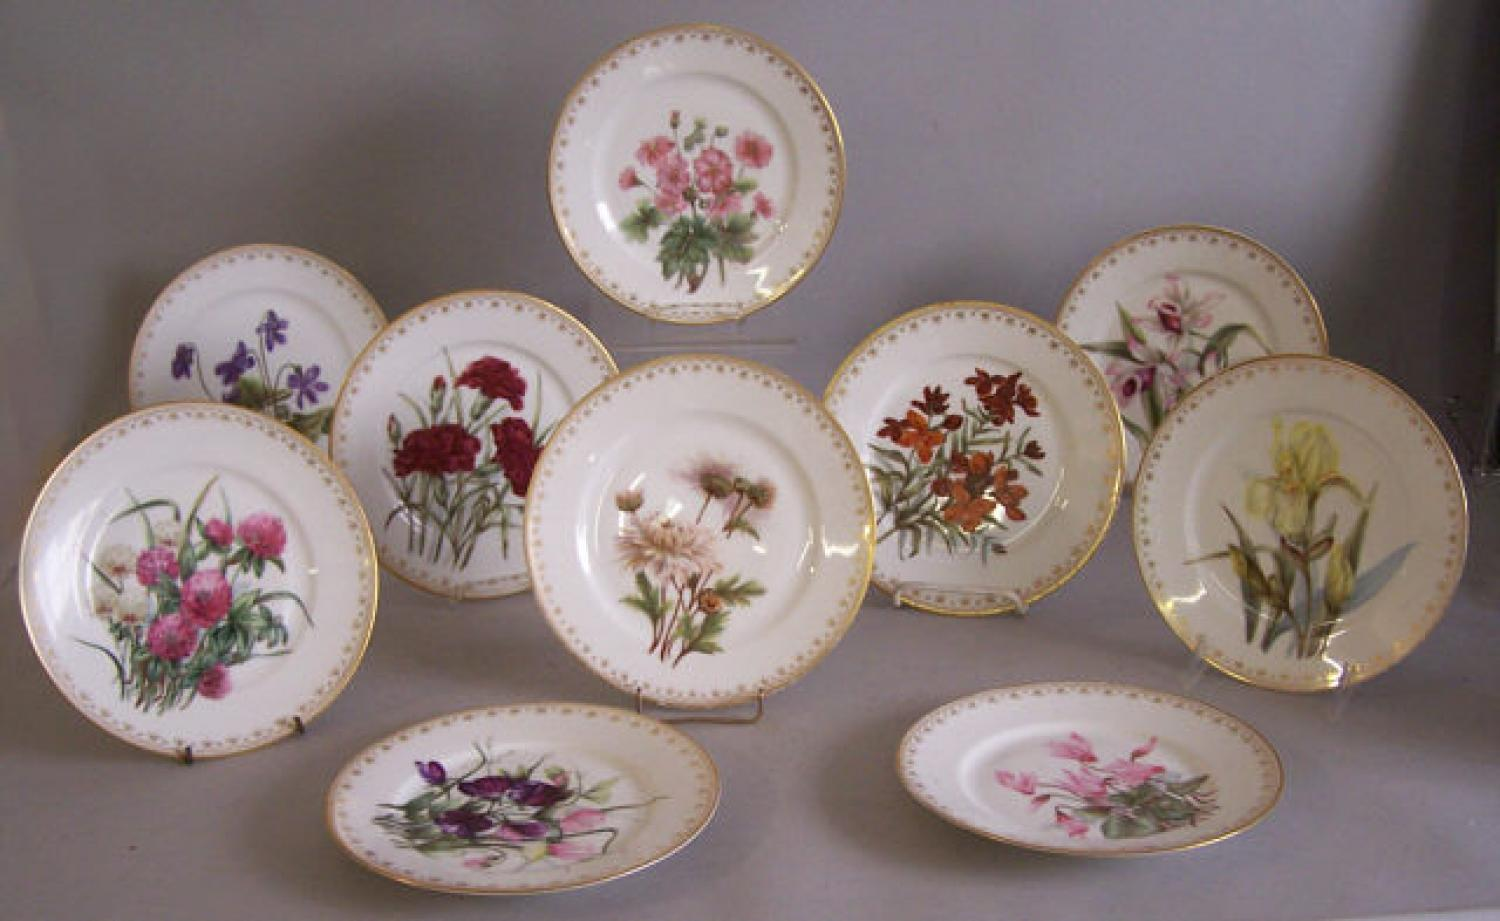 Ten Haviland and company L limoges floral painted plates 1888 to  1896